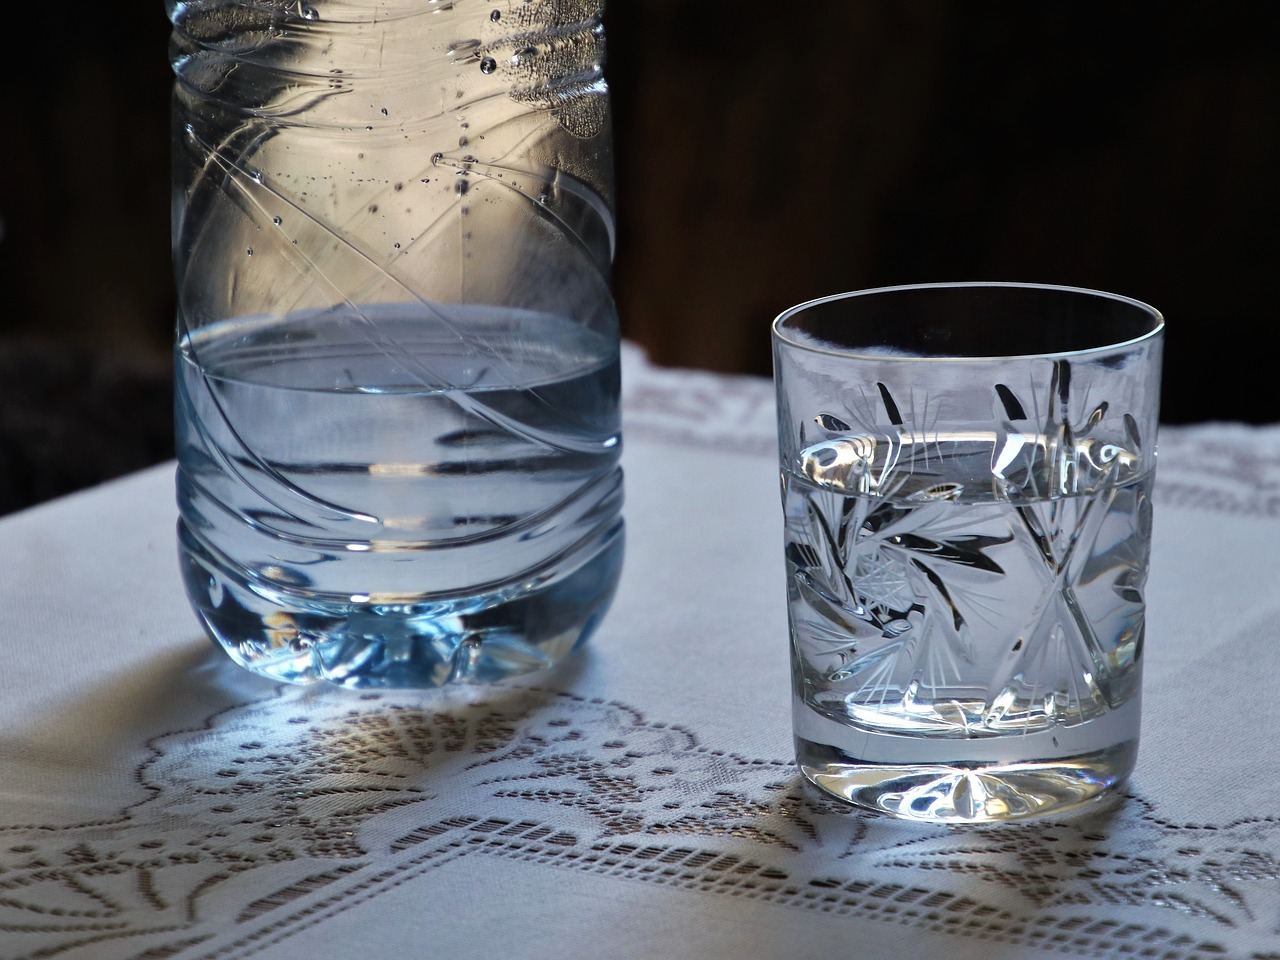 Study: Drinking enough water can prevent heart failure